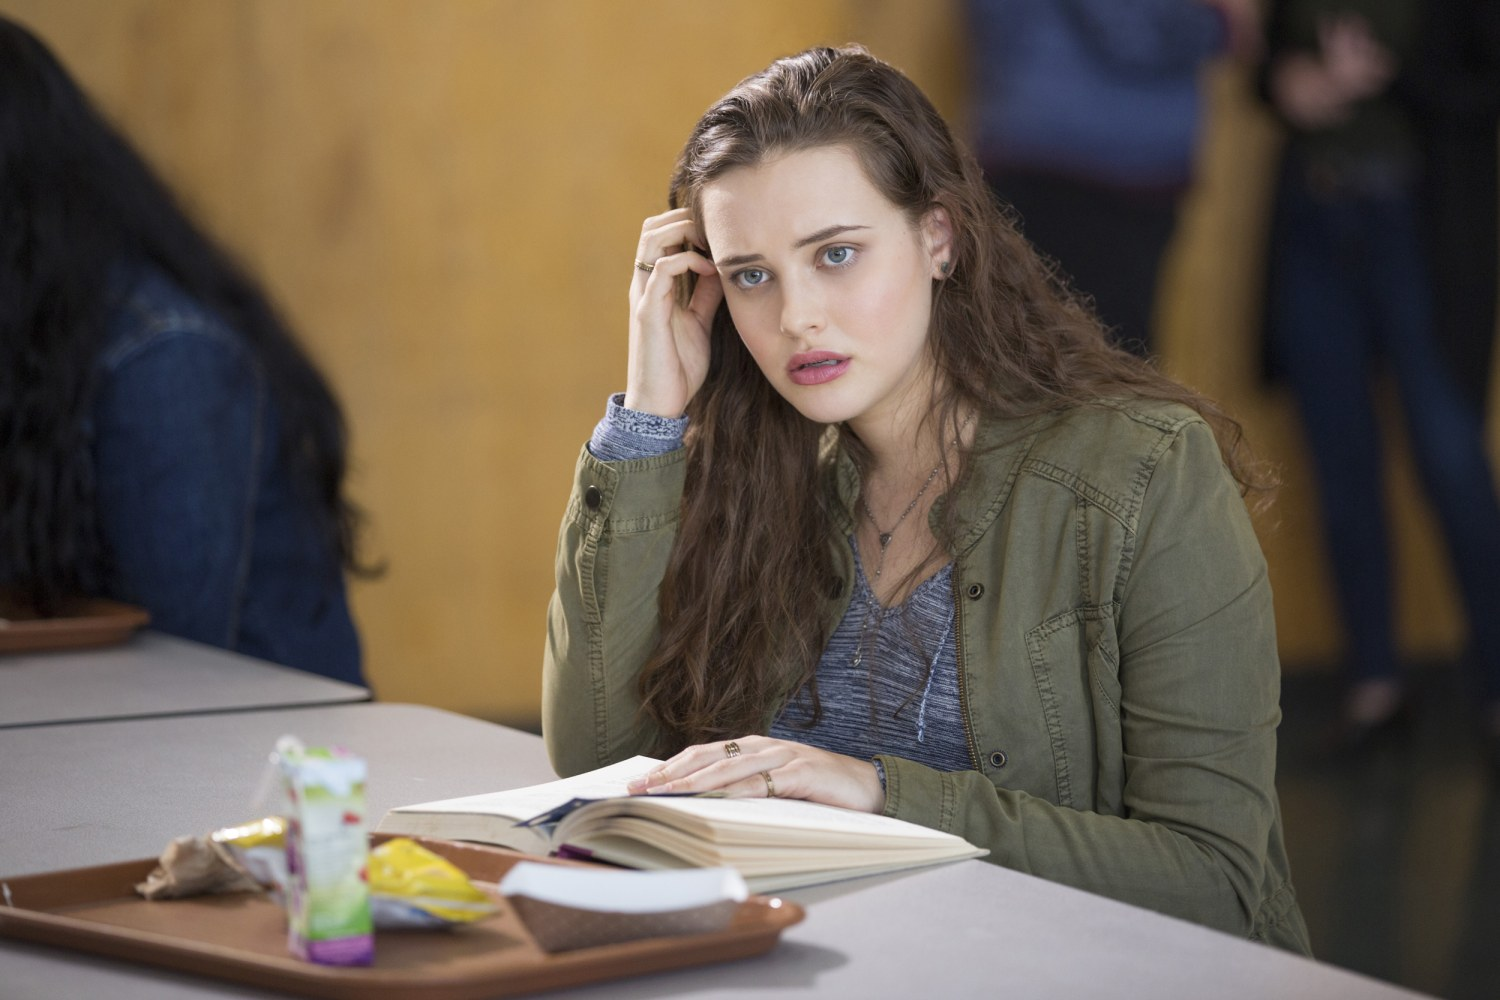 Netflix drama '13 Reasons Why' linked to suicidal thoughts